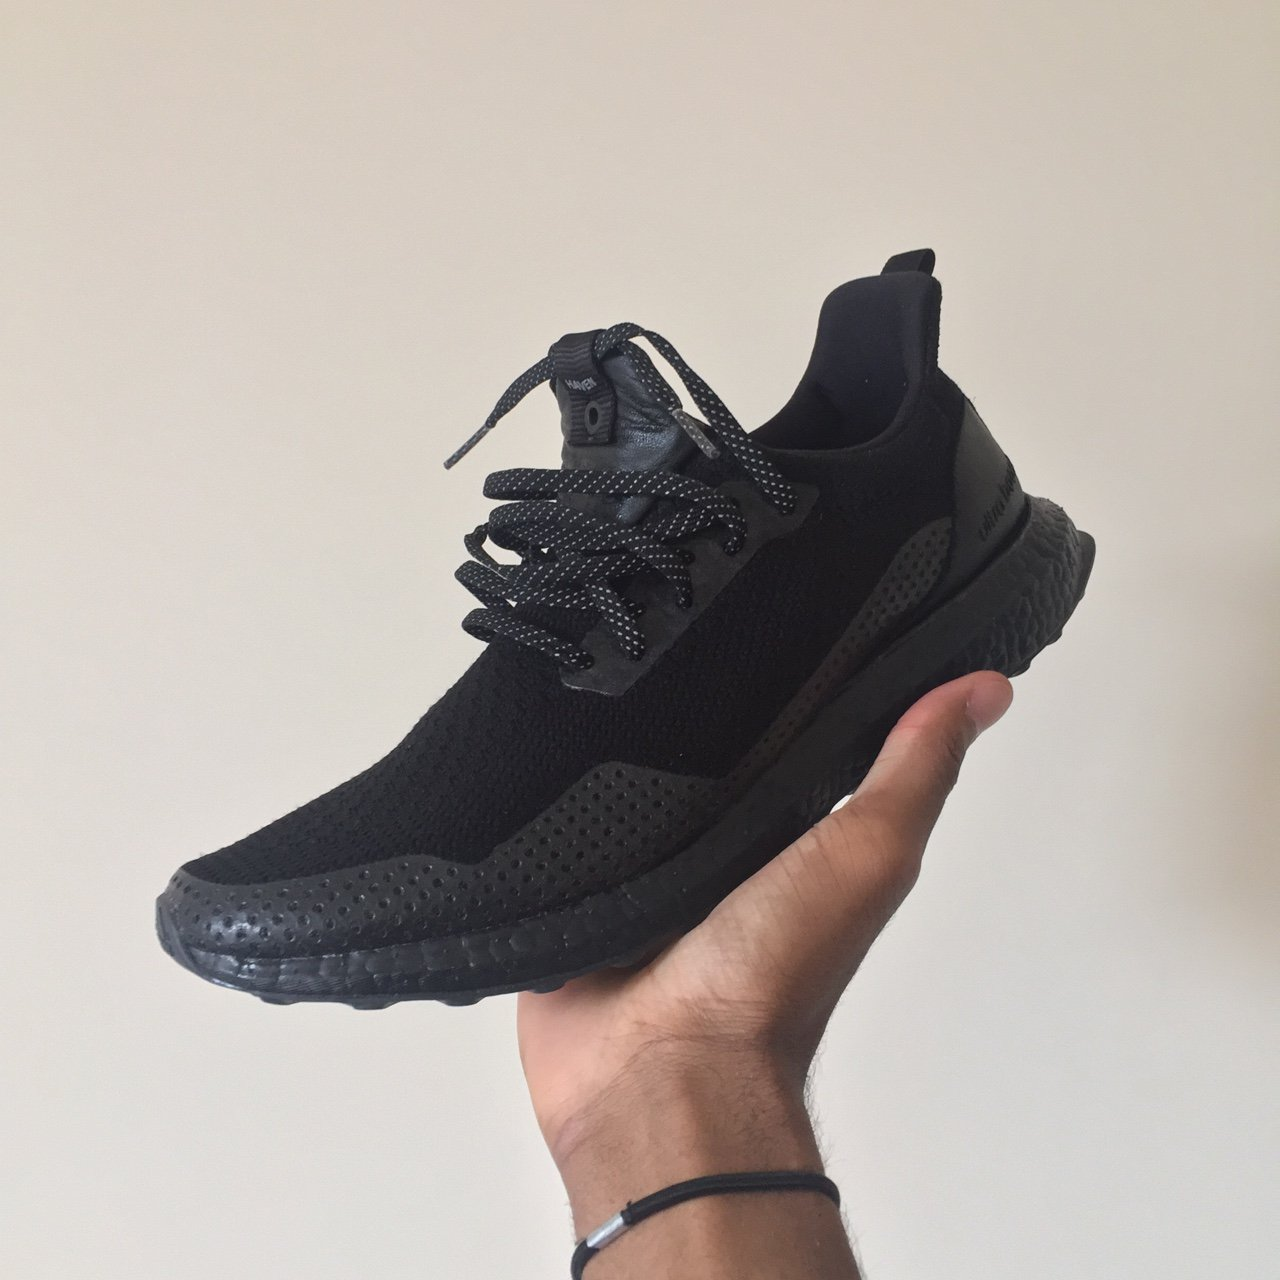 1e64370fe43 Adidas X Haven UltraBOOST 2.0 Uncaged (Leather) Colourway  - Depop